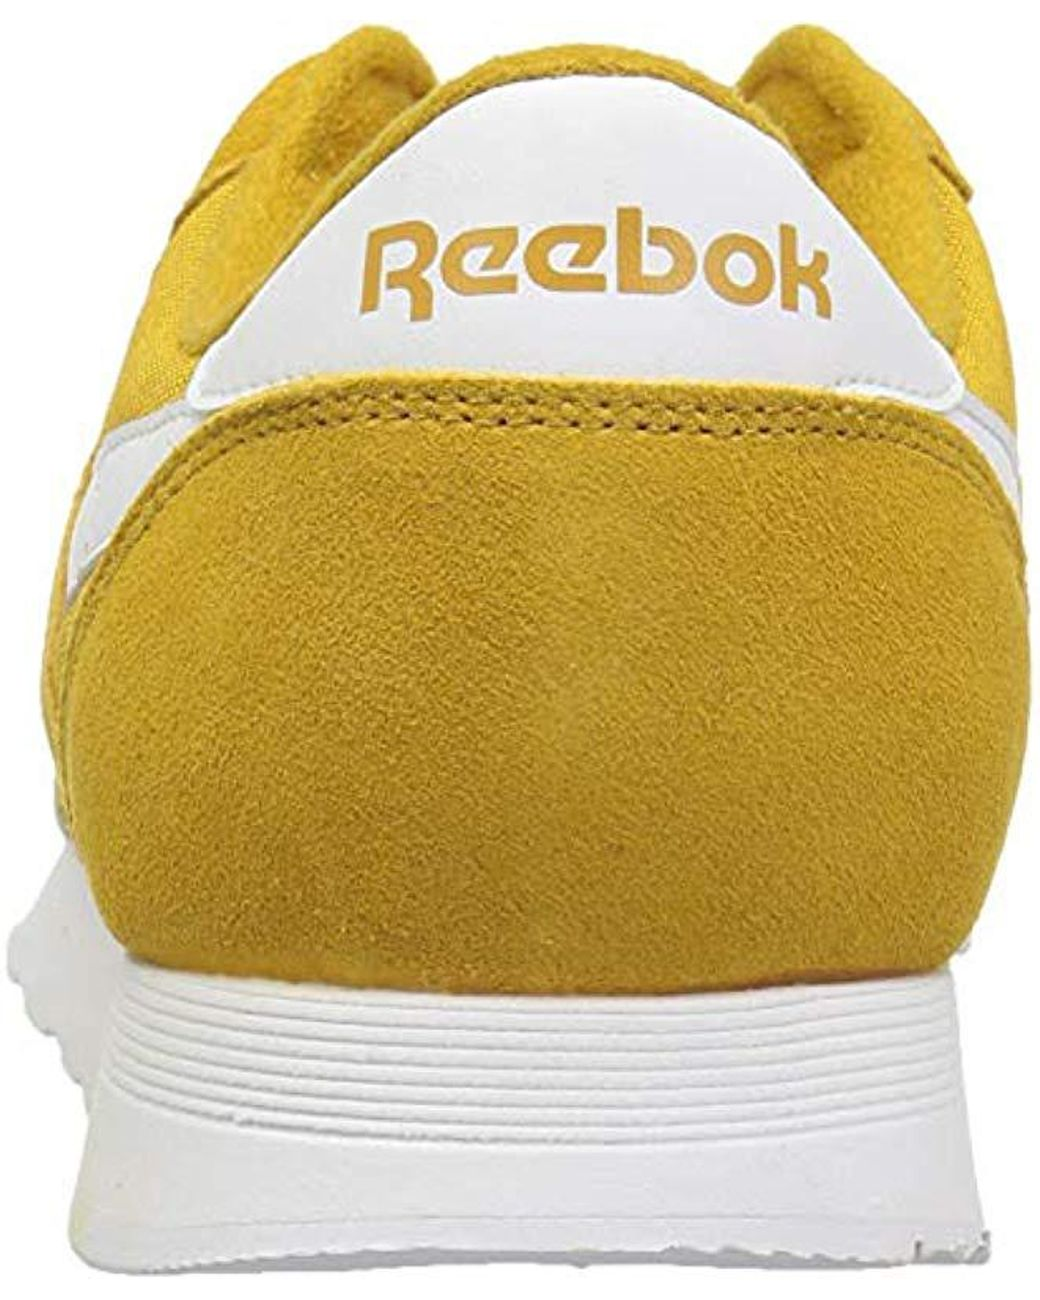 994f195b008ea Lyst - Reebok Classic Nylon Sneaker in Yellow for Men